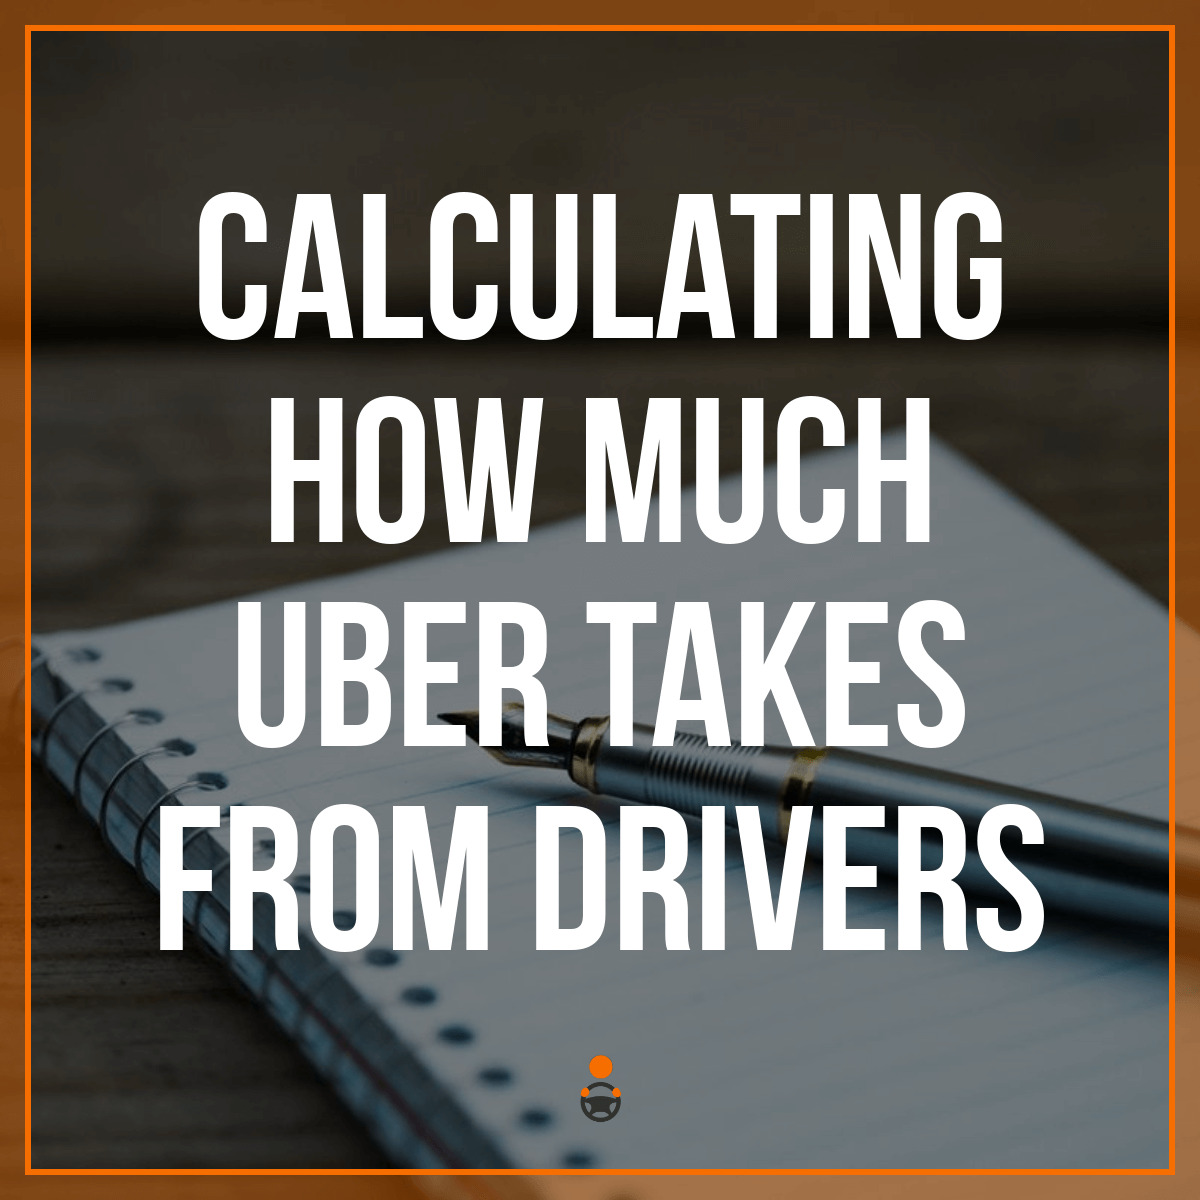 Calculating How Much Uber Takes from Drivers